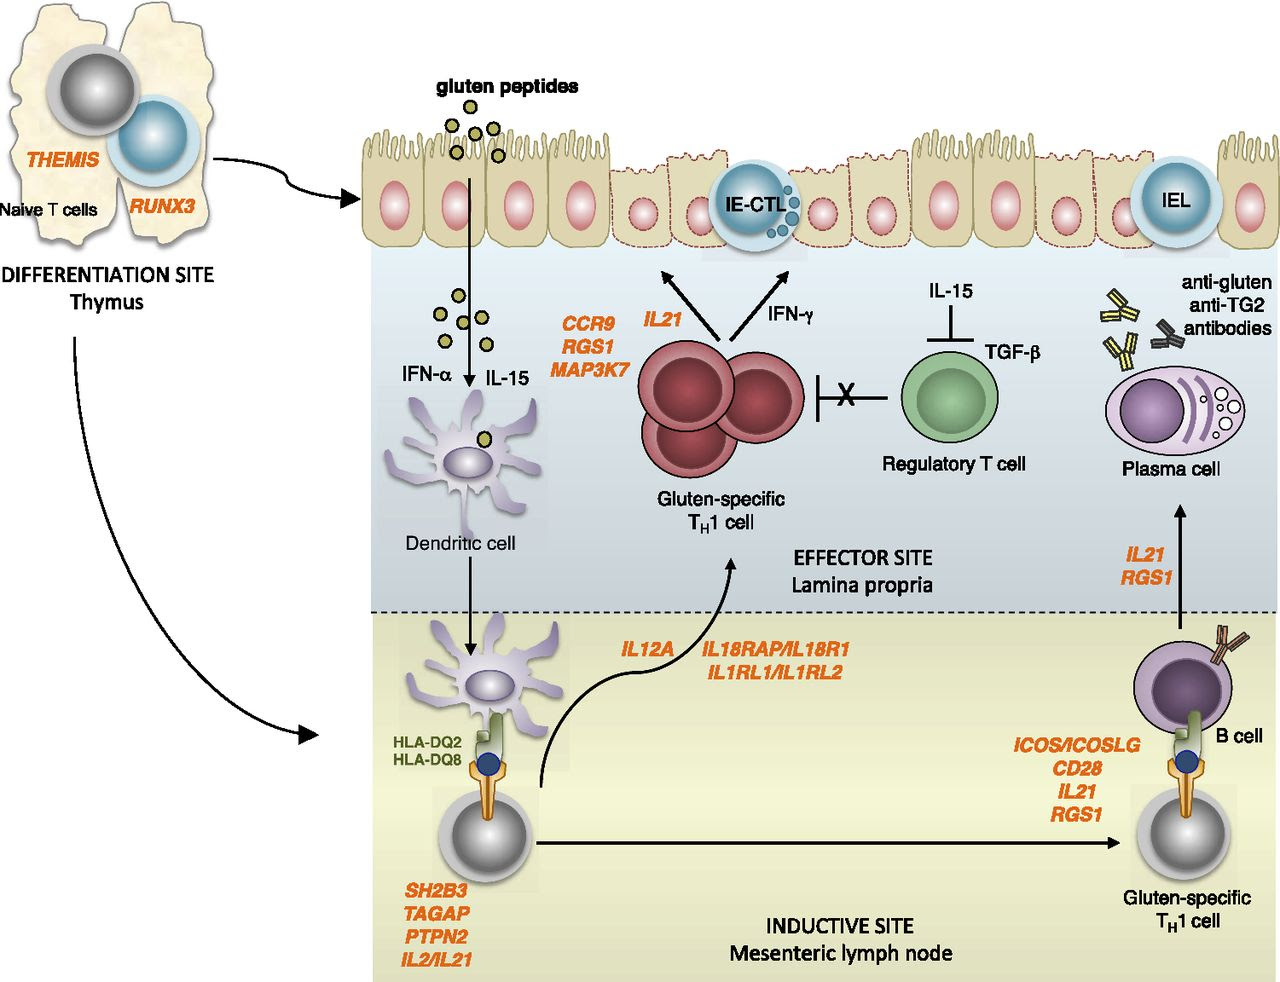 T Cells in Celiac Disease | The Journal of Immunology